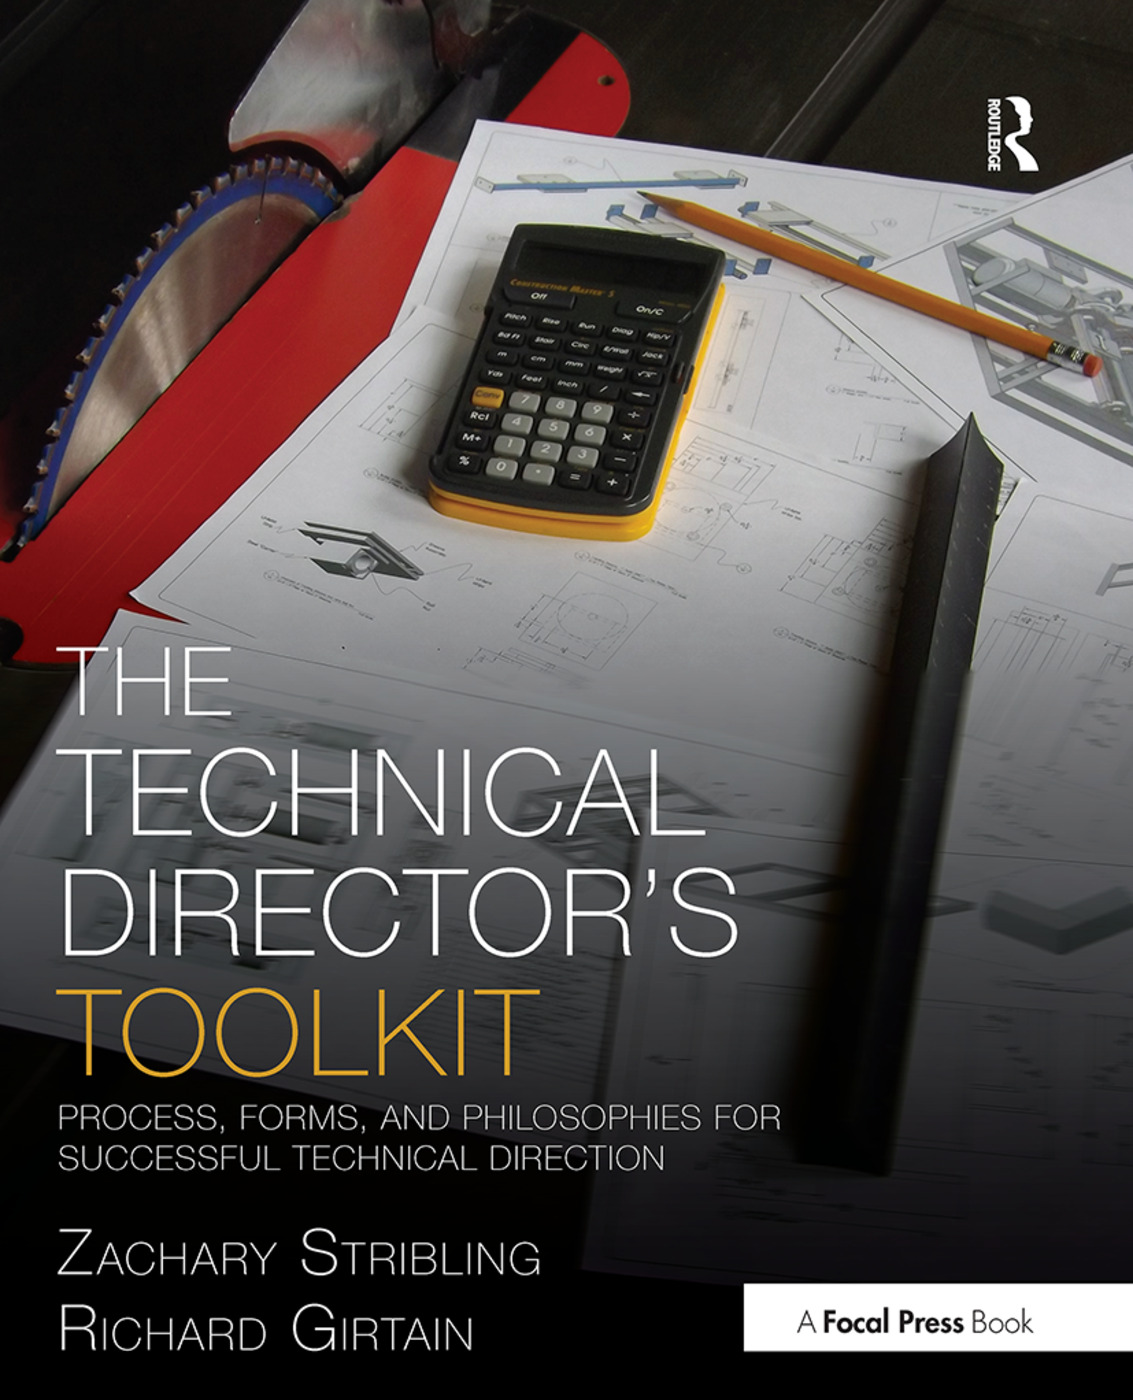 The Technical Director's Toolkit: Process, Forms, and Philosophies for Successful Technical Direction (Paperback) book cover